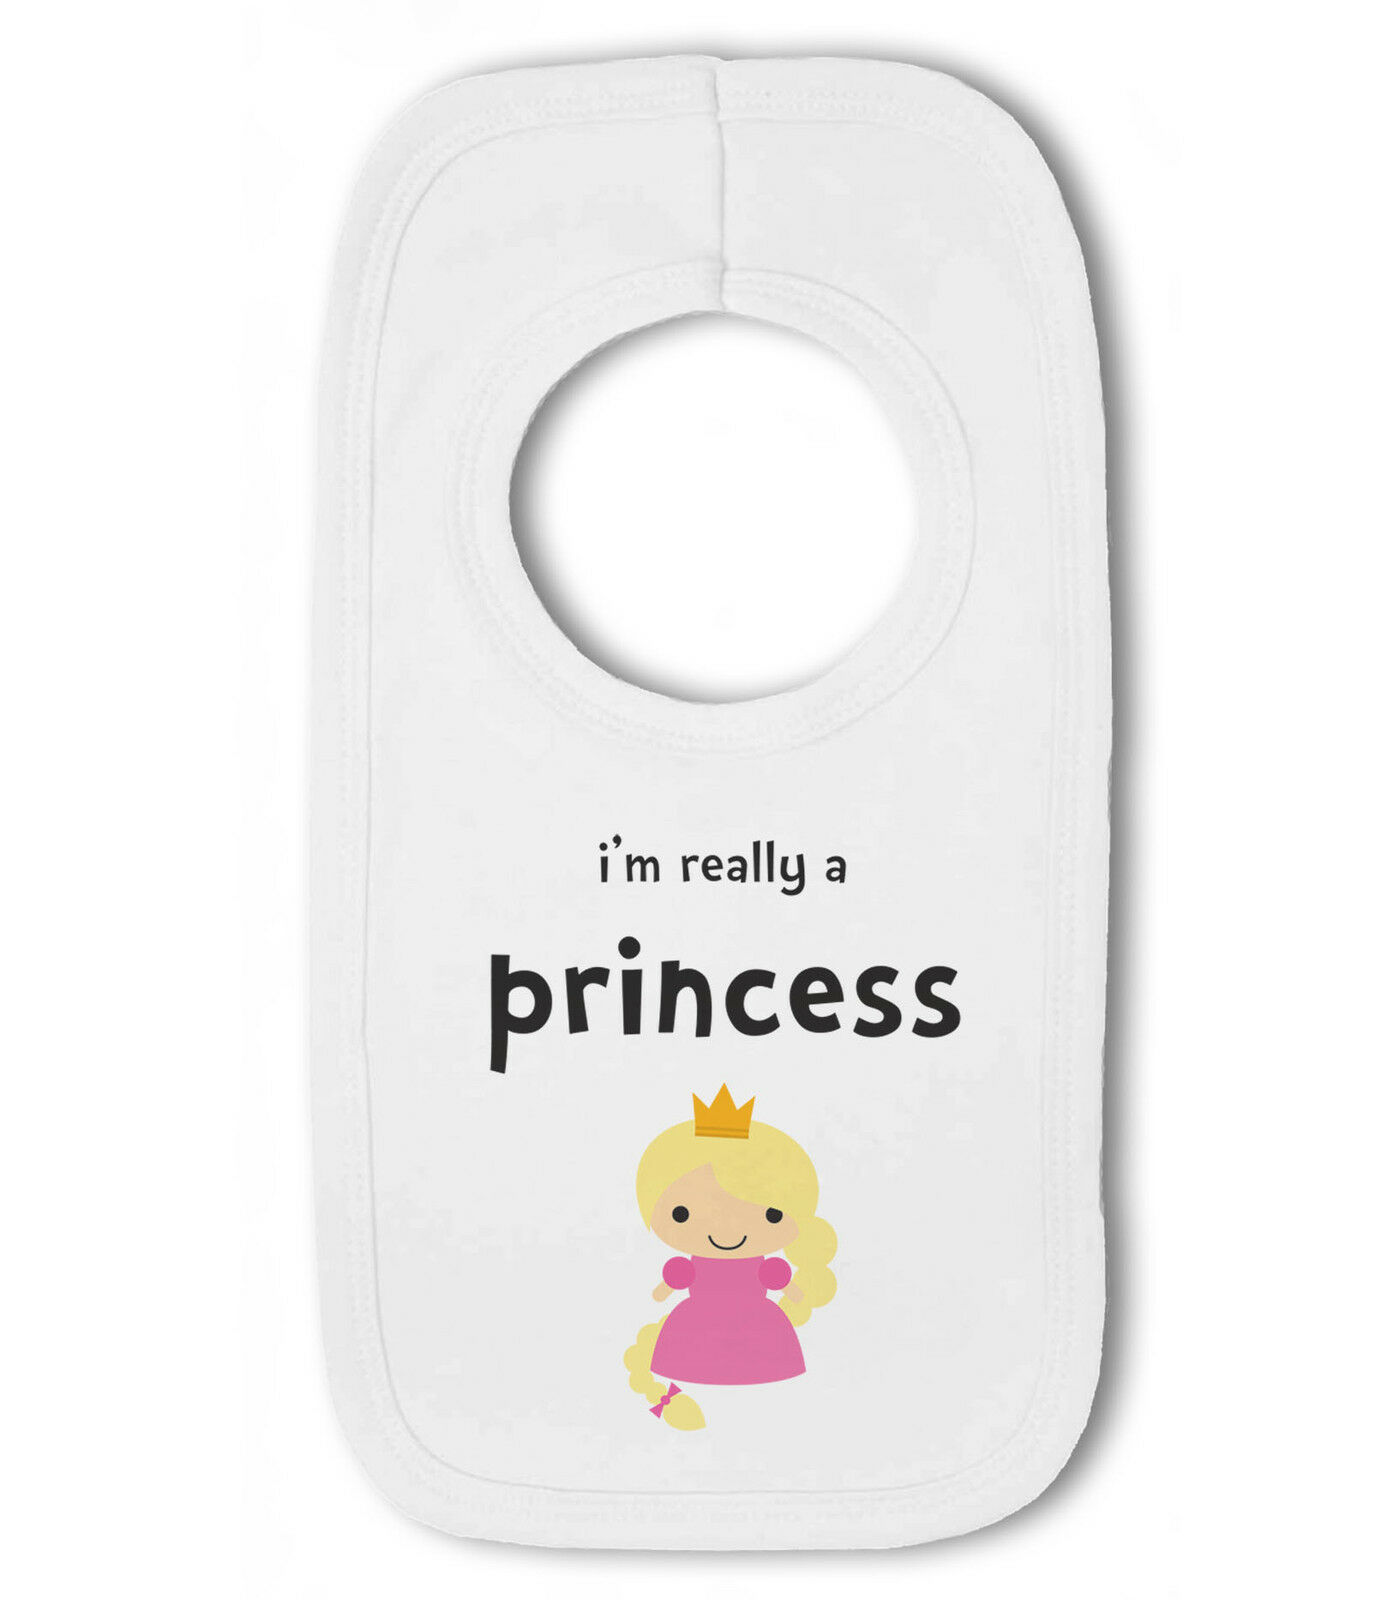 Even a Princess must Poop funny Baby Pullover Bib by BWW Print Ltd